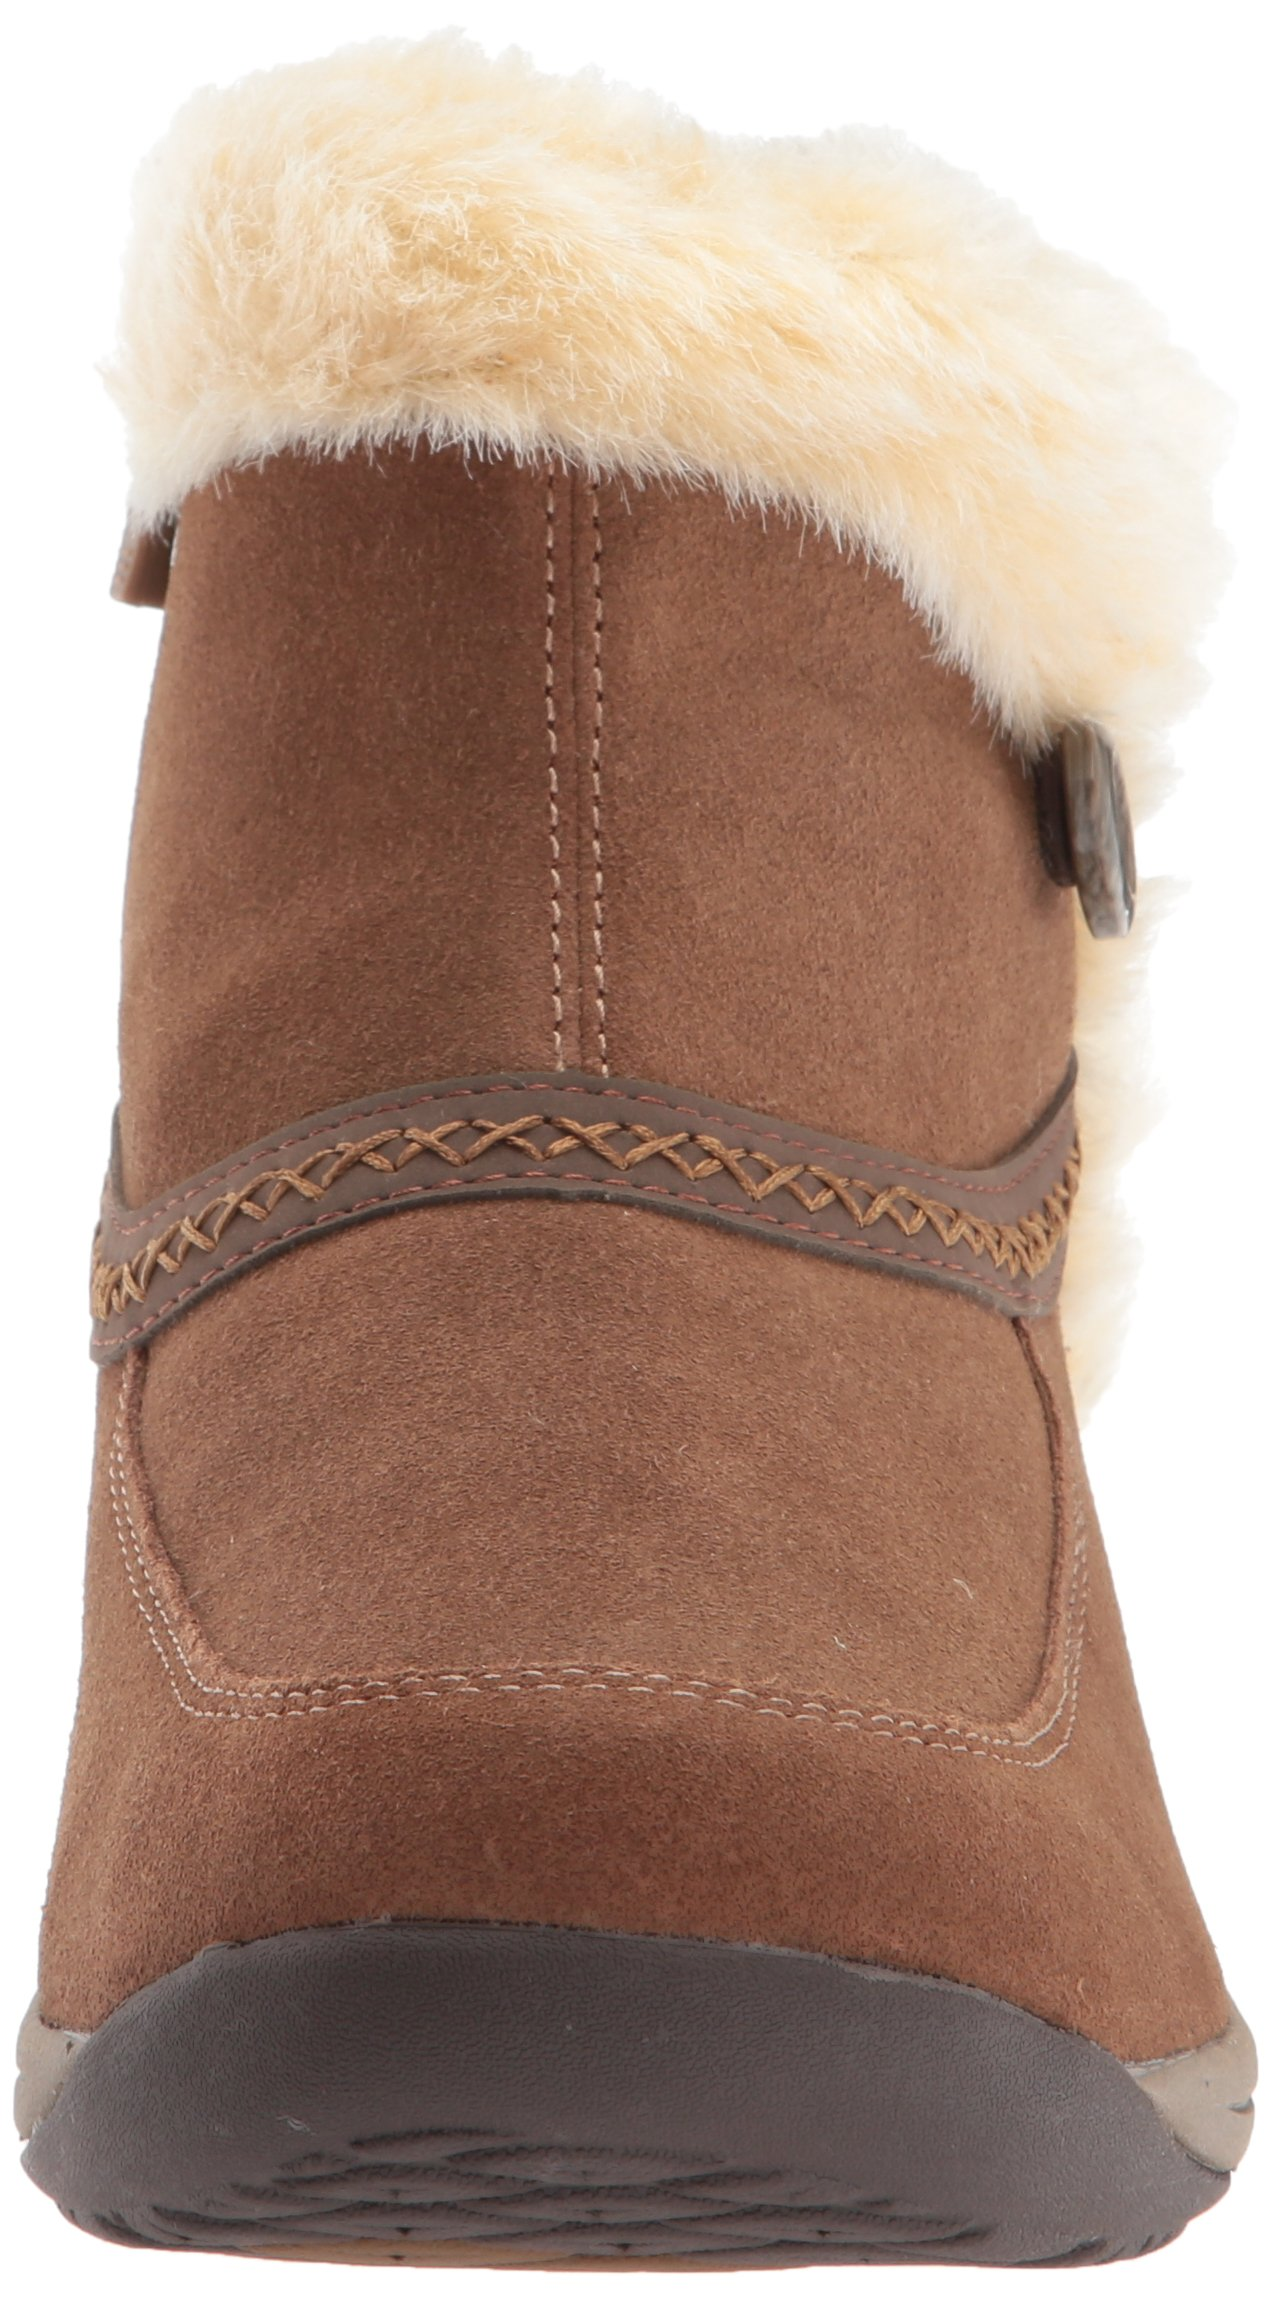 Easy Spirit Women's Icerink Ankle Bootie, Dark Natural Multi Suede, 6 W US by Easy Spirit (Image #4)